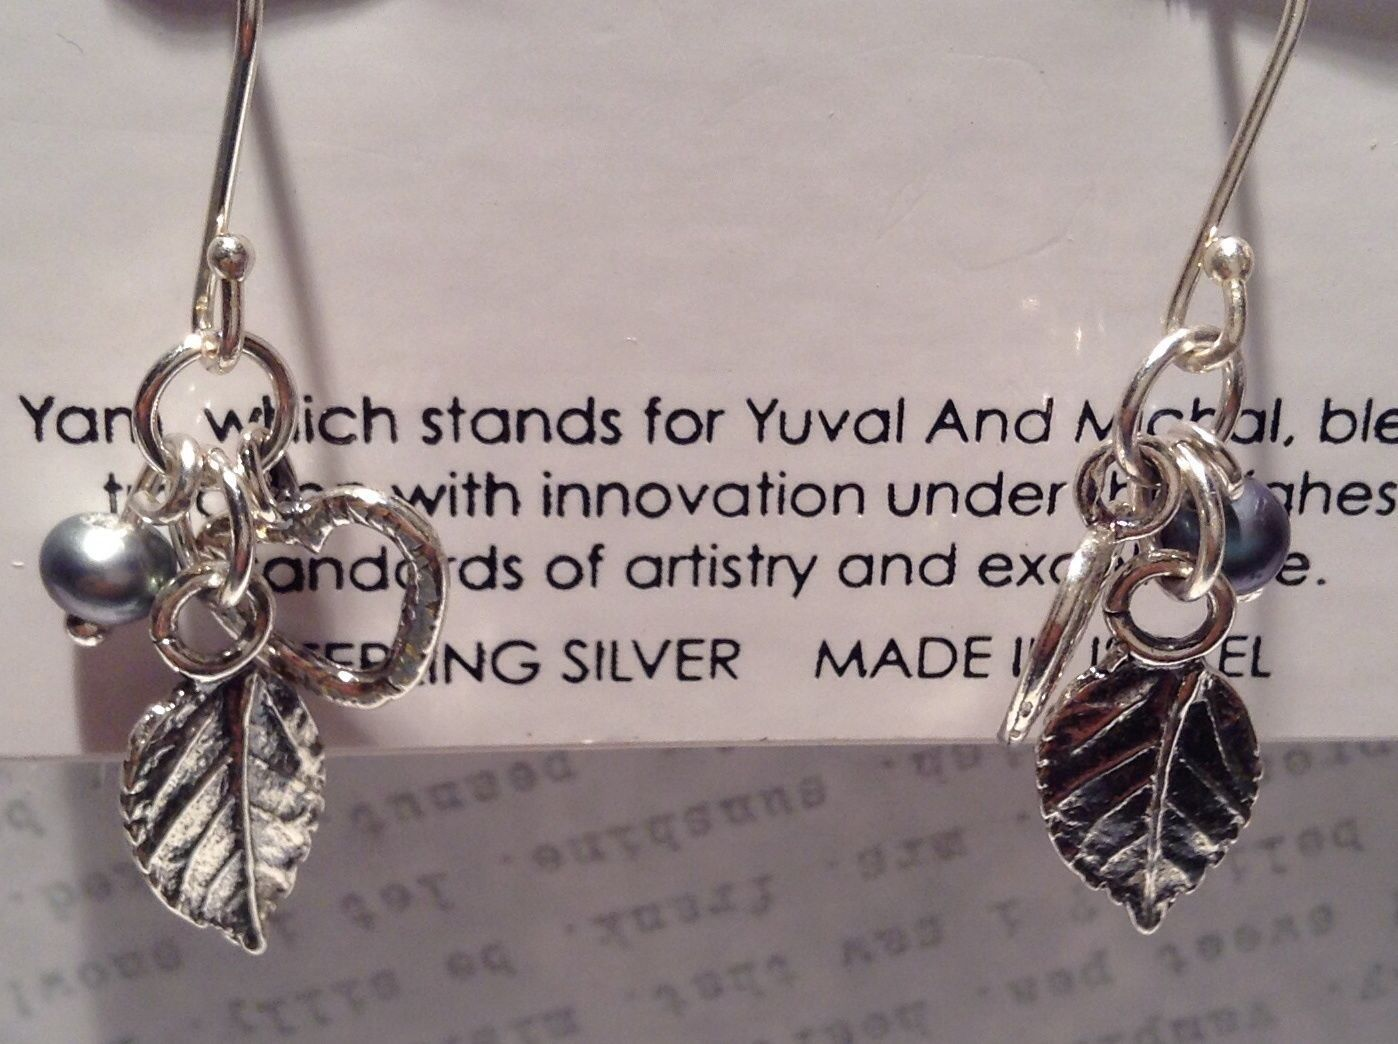 Leaf Heart Black Pearl Sterling Silver 925 Handmade Earrings Inspired by Nature